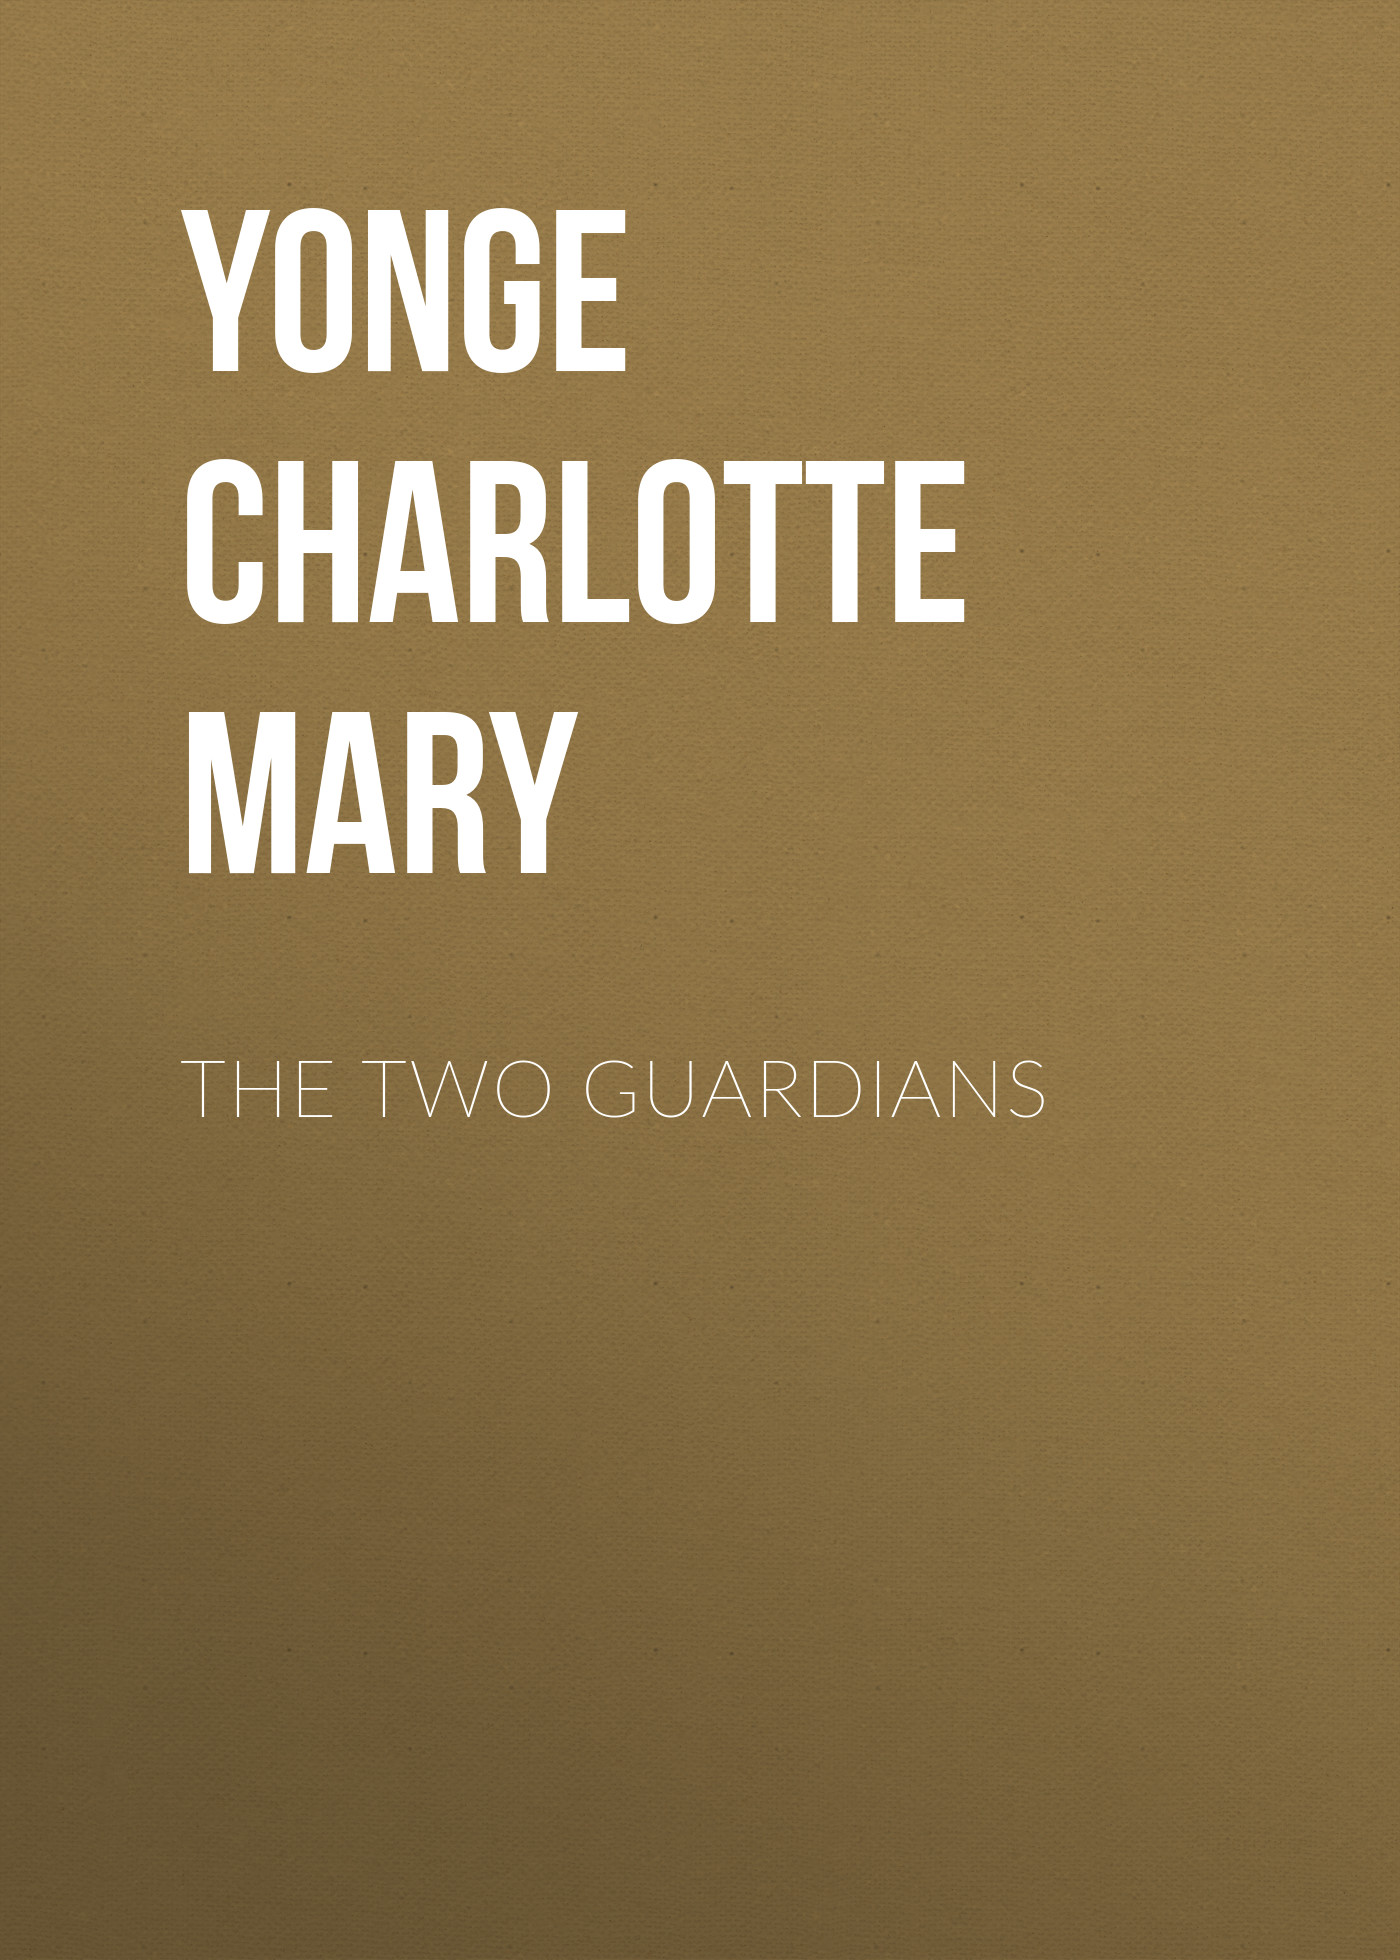 лучшая цена Yonge Charlotte Mary The Two Guardians